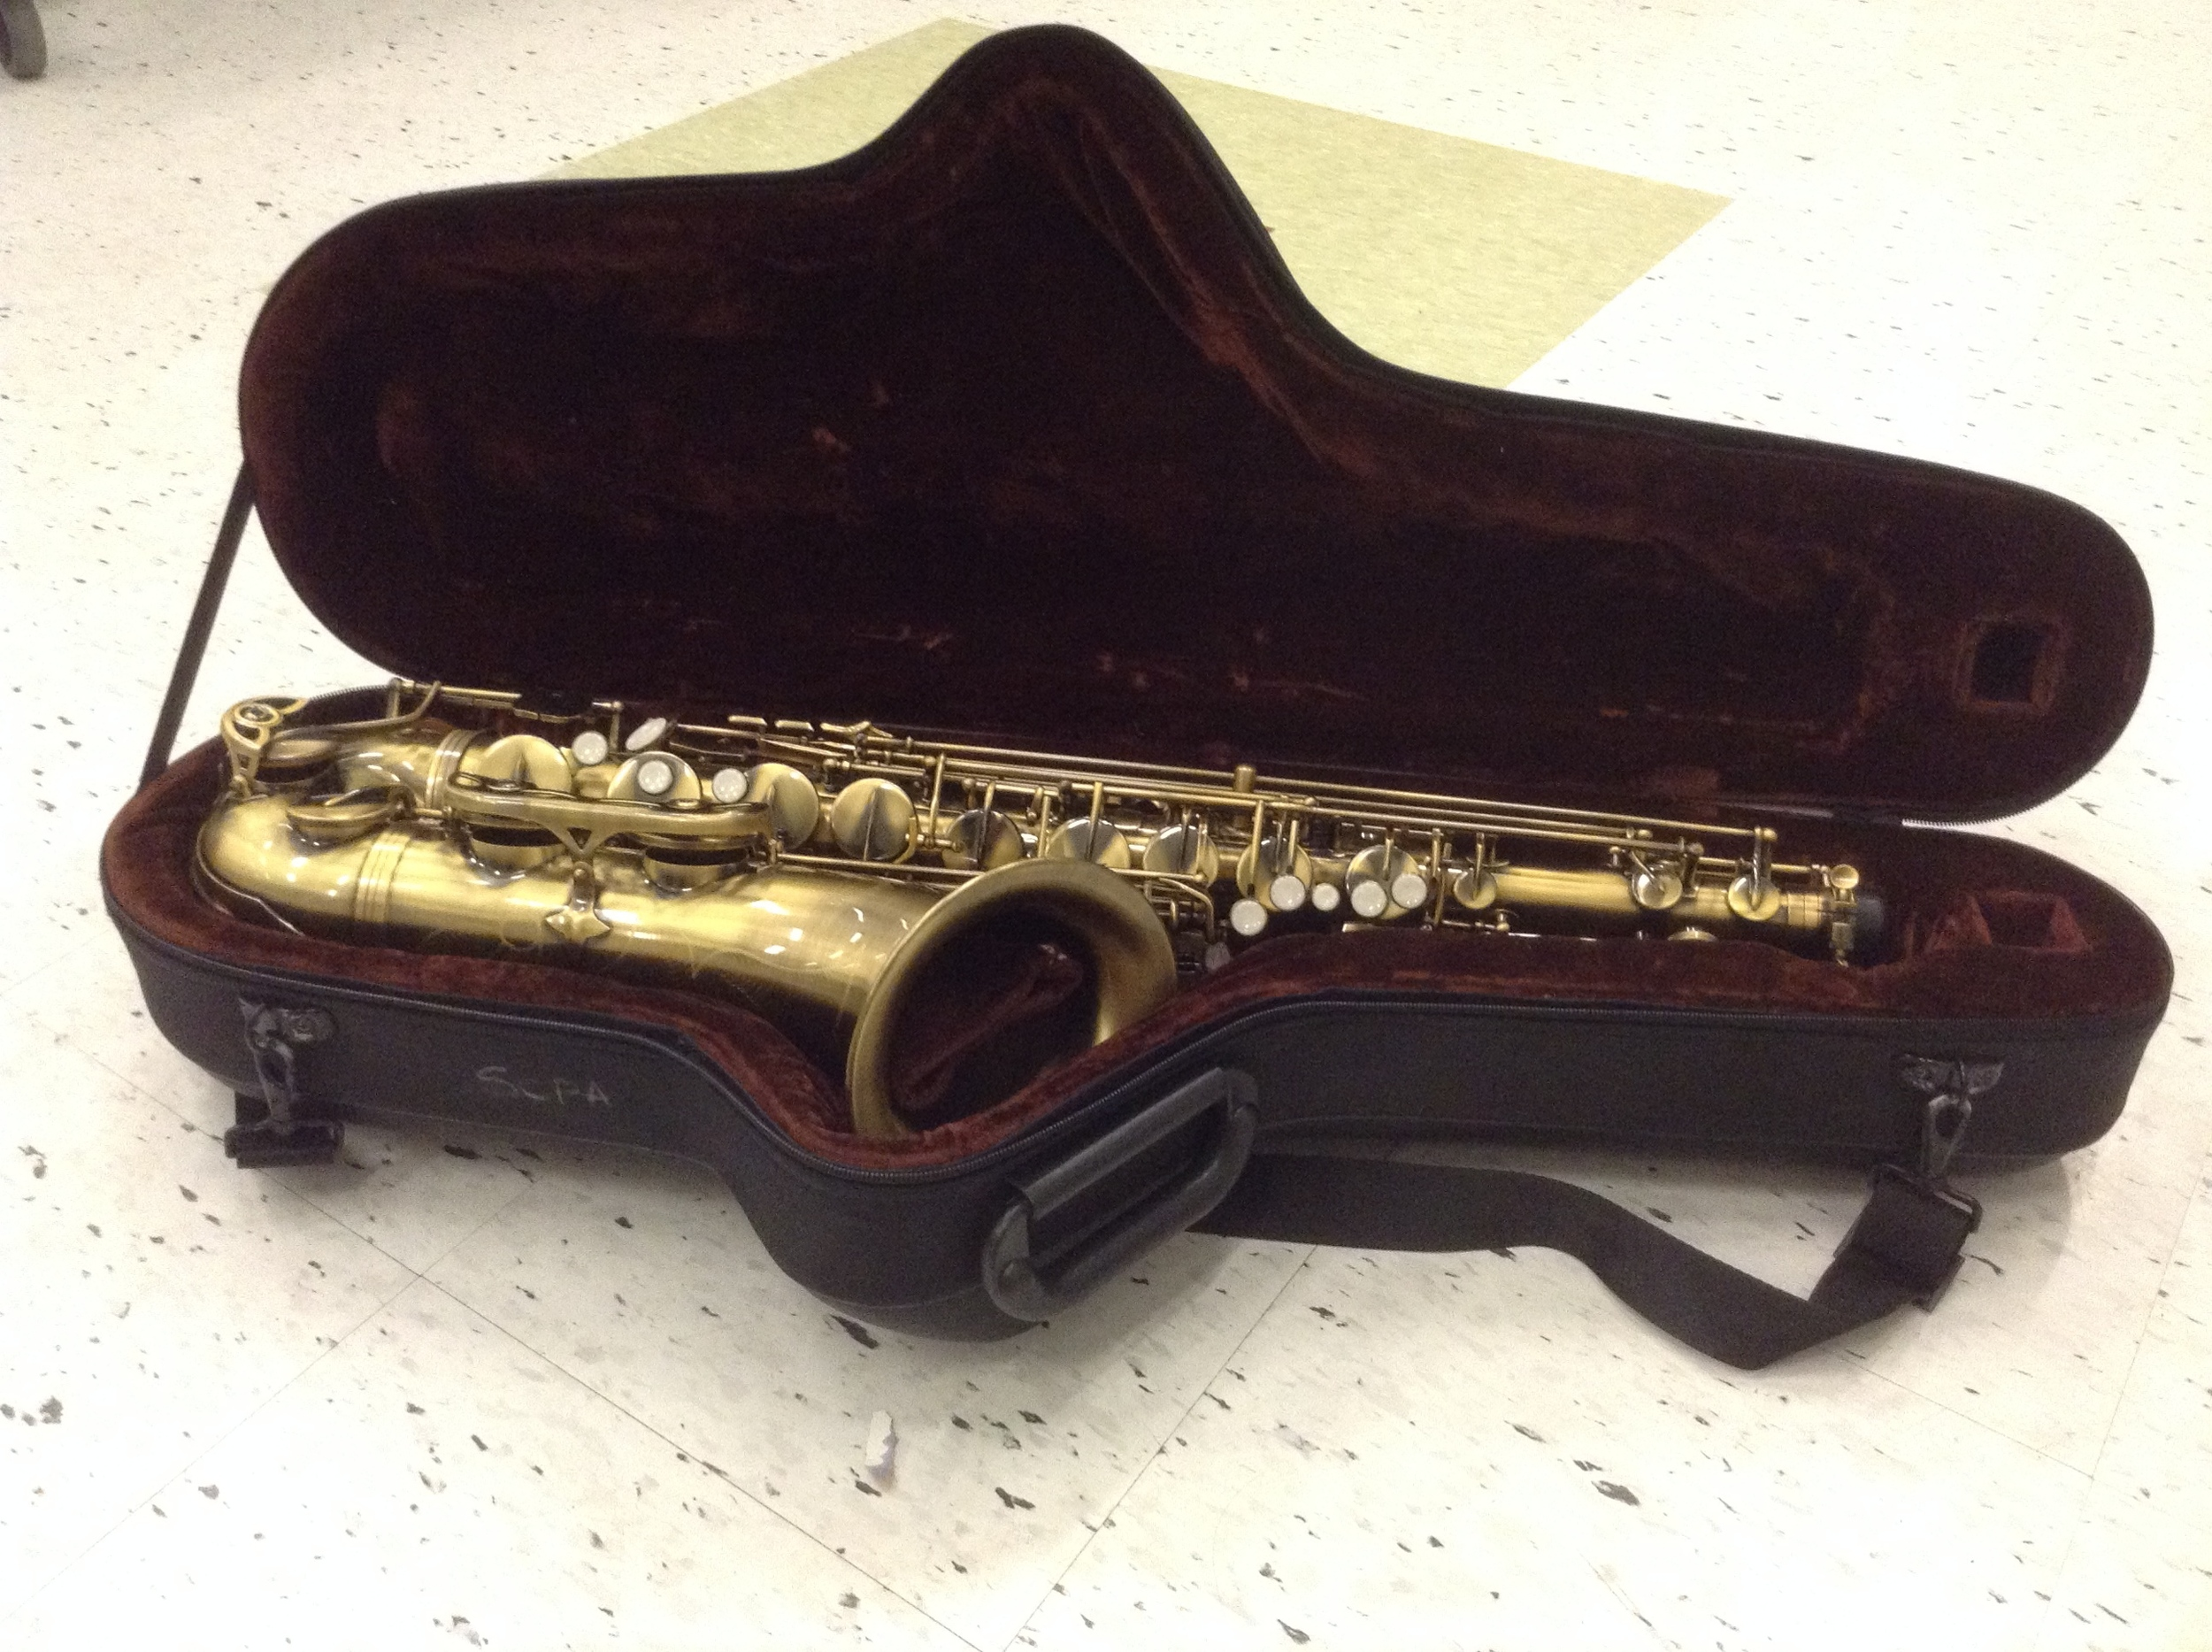 picture of saxophone here...